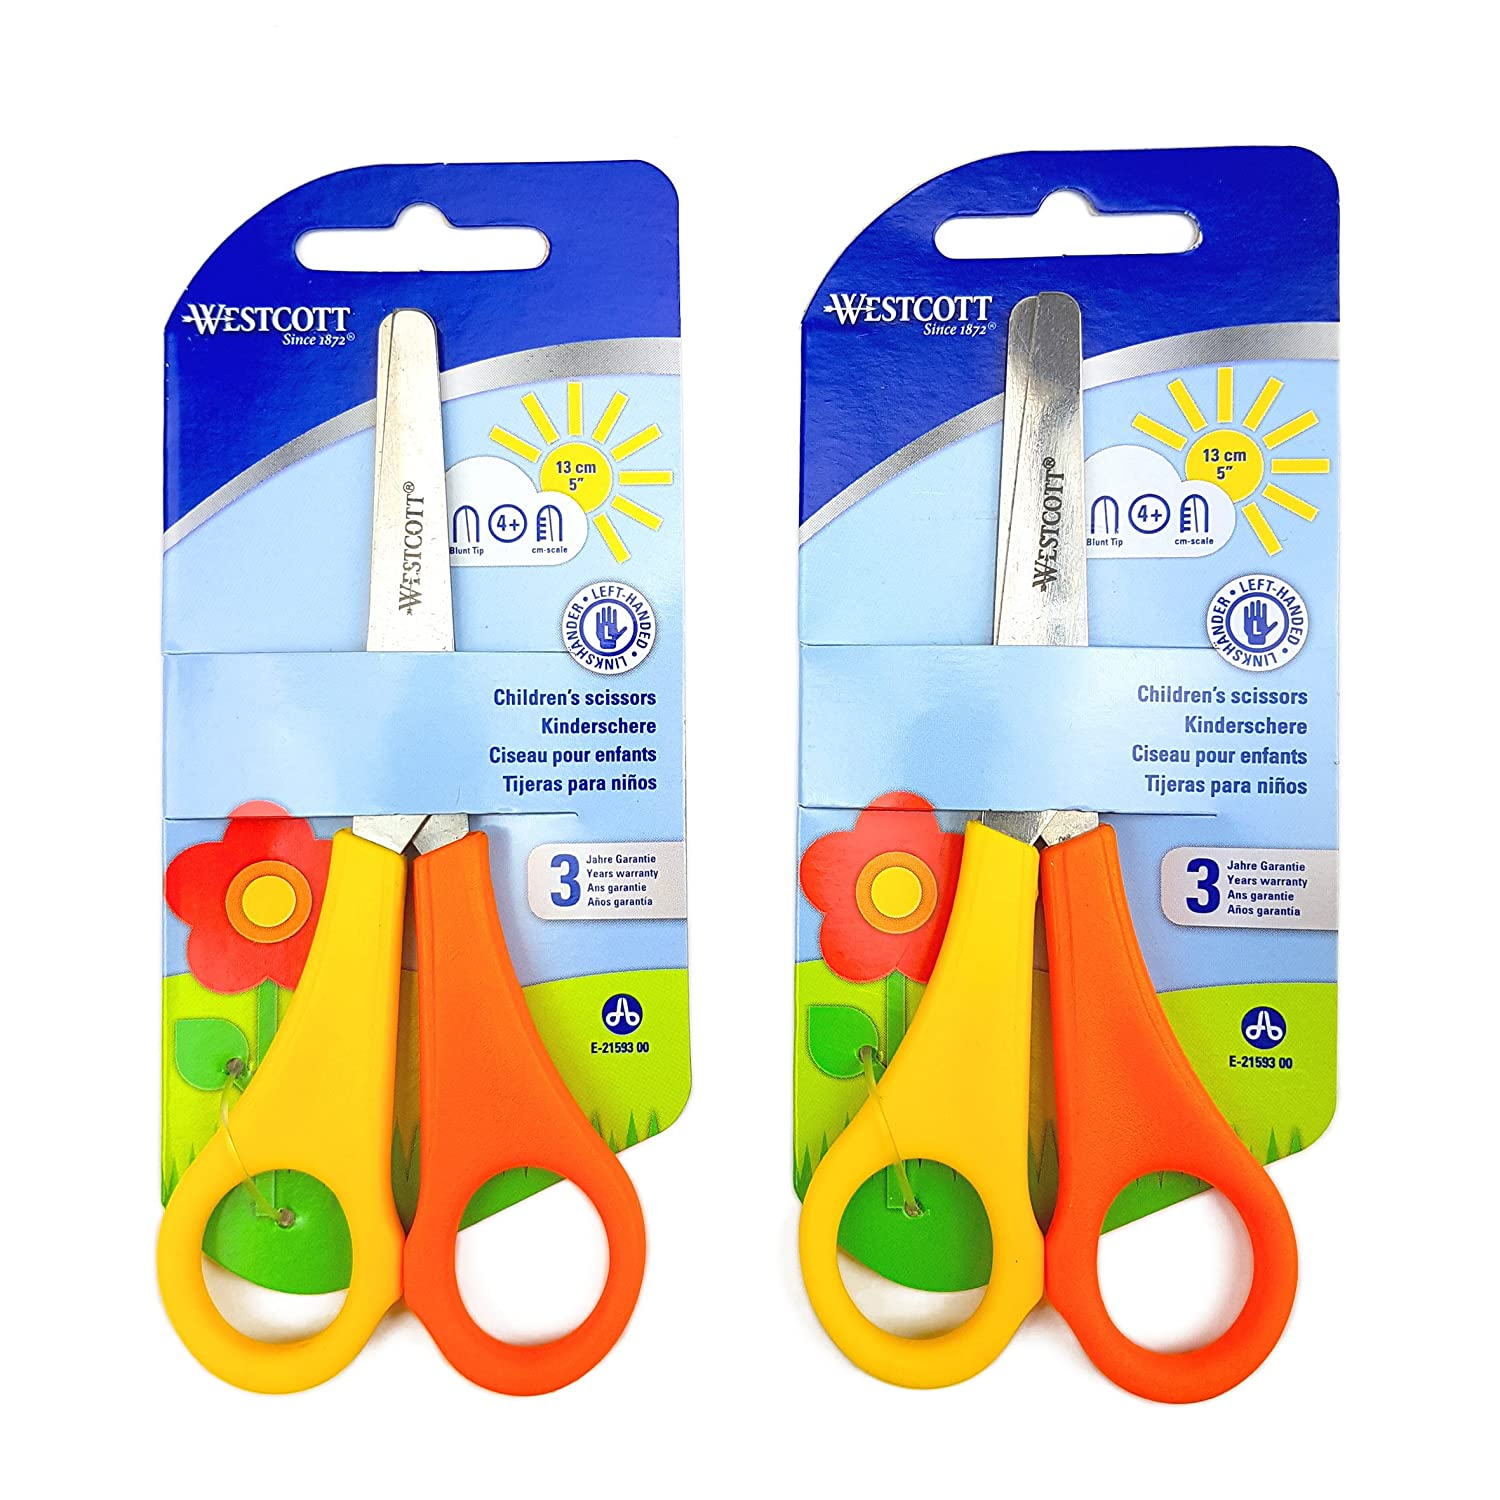 2 x Childrens Kids Left Handed Scissors with Ruler Edge Westcott Branded